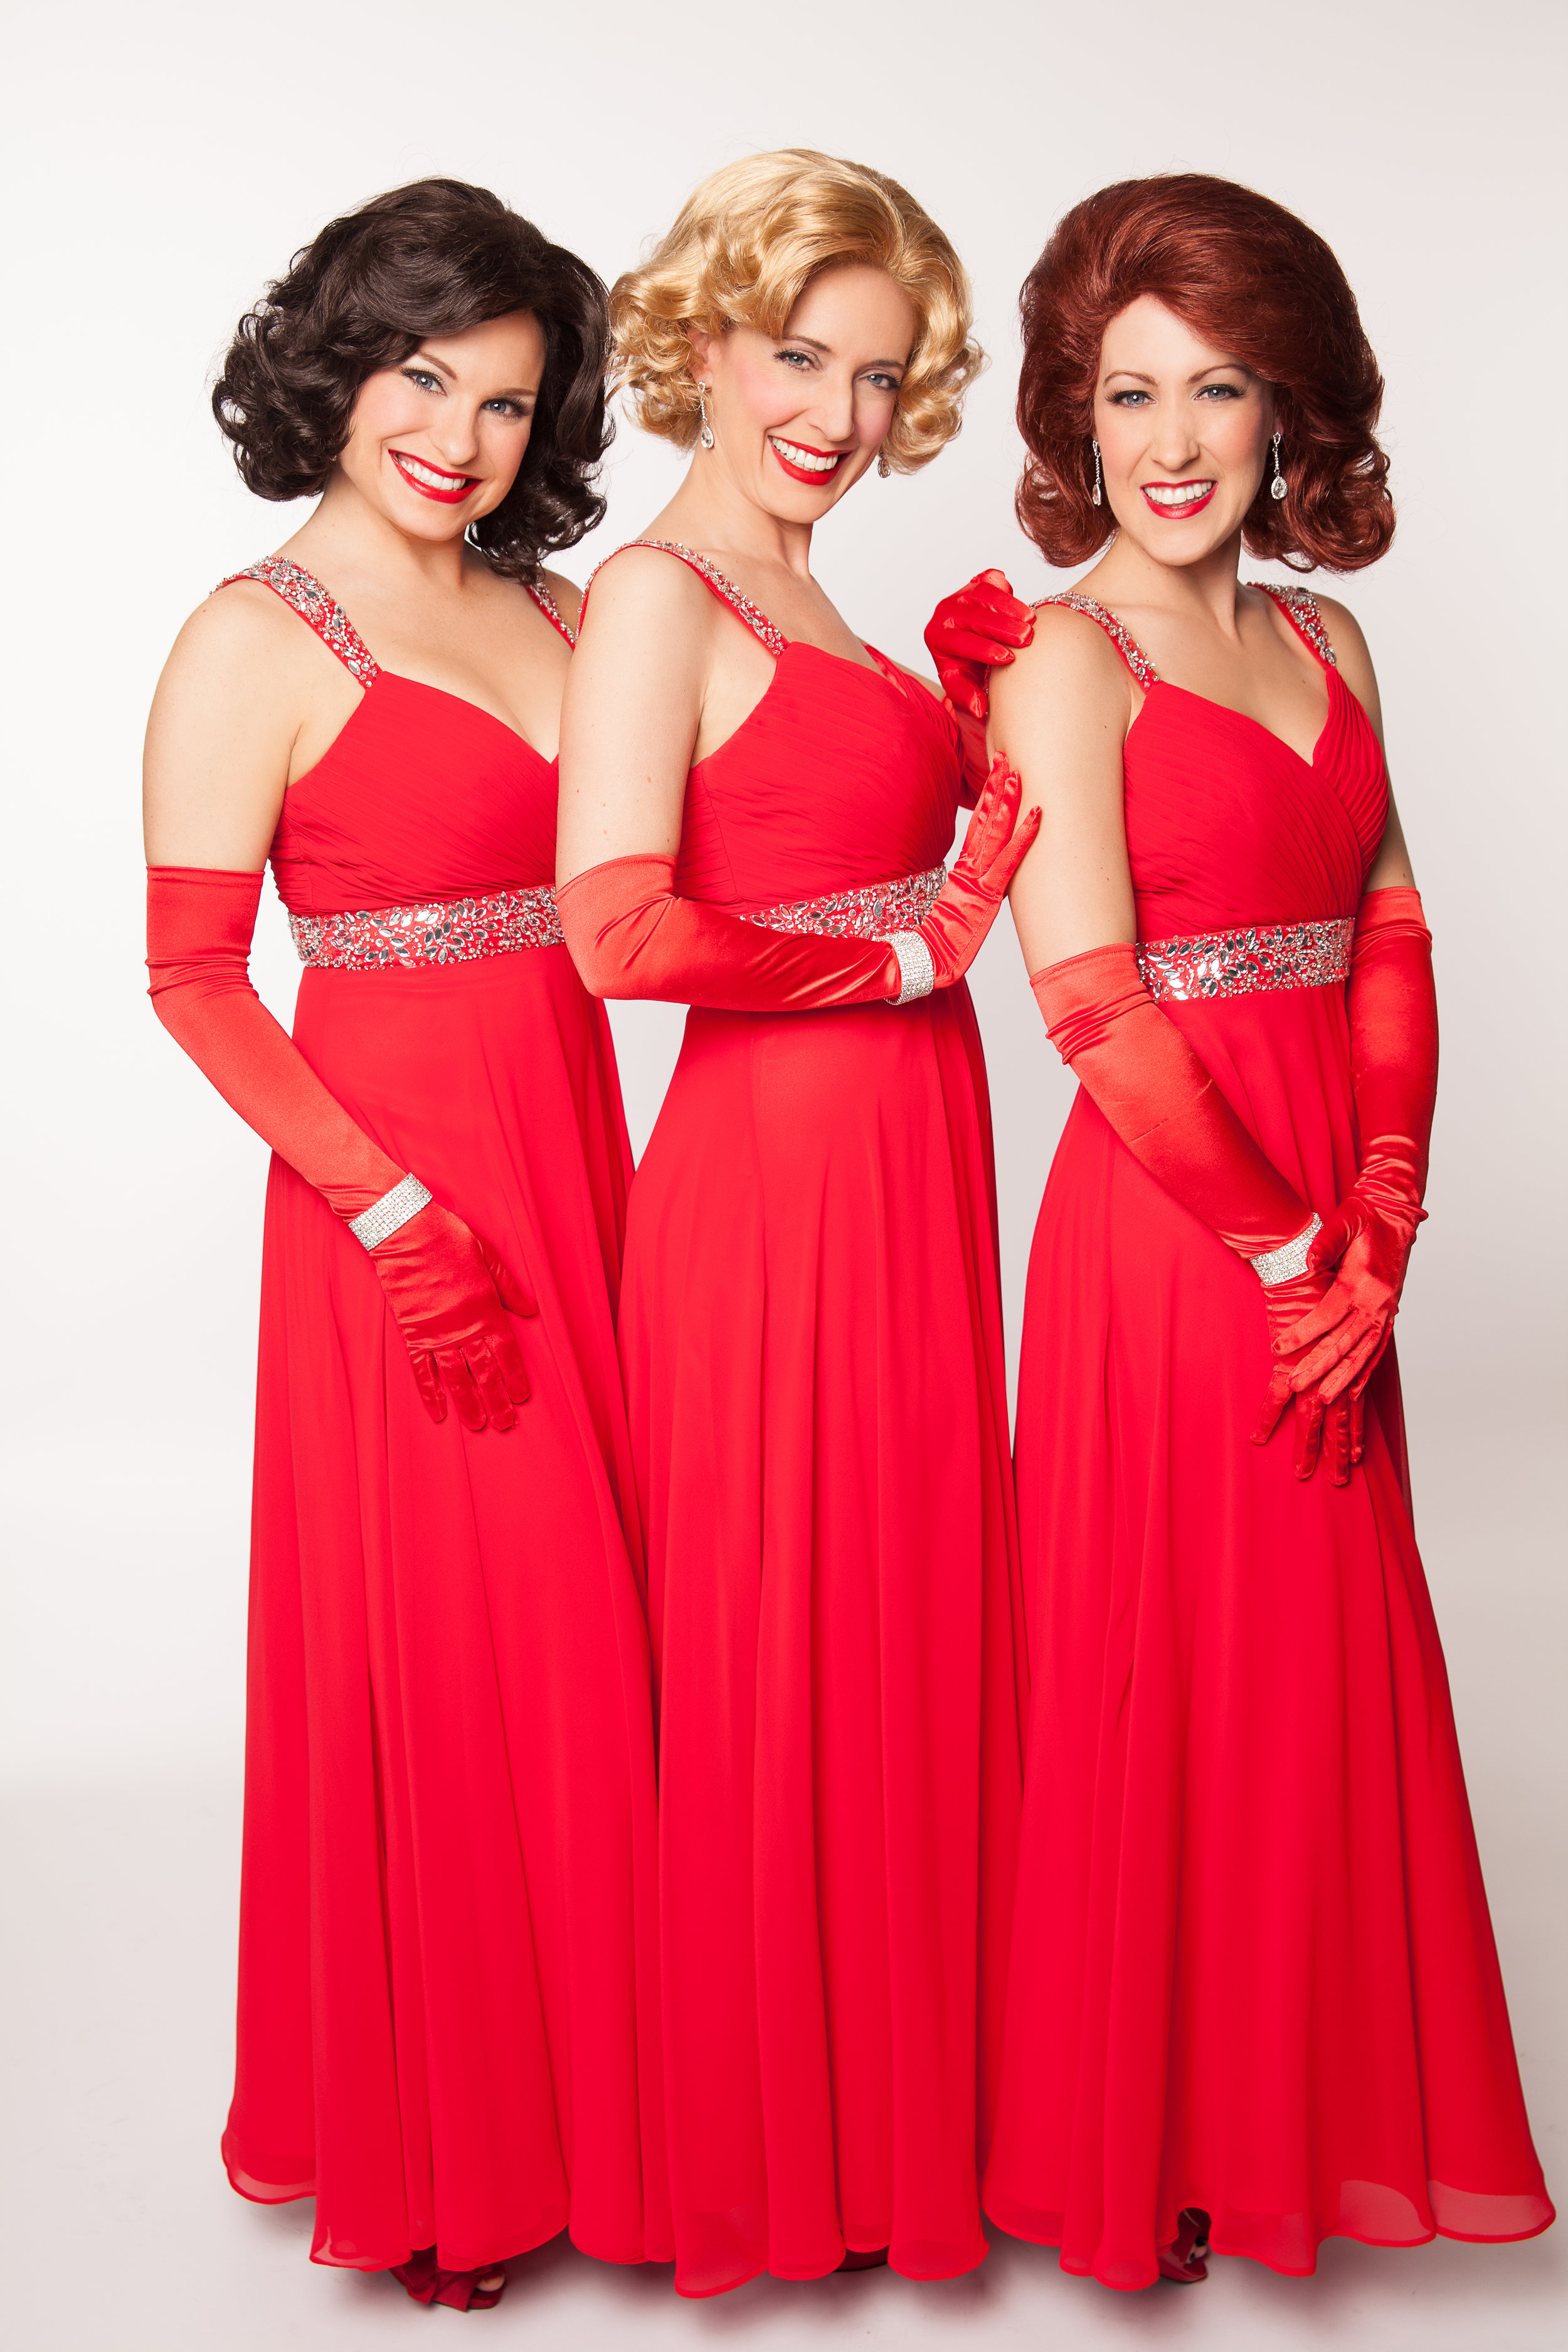 The Swing Dolls formal gowns